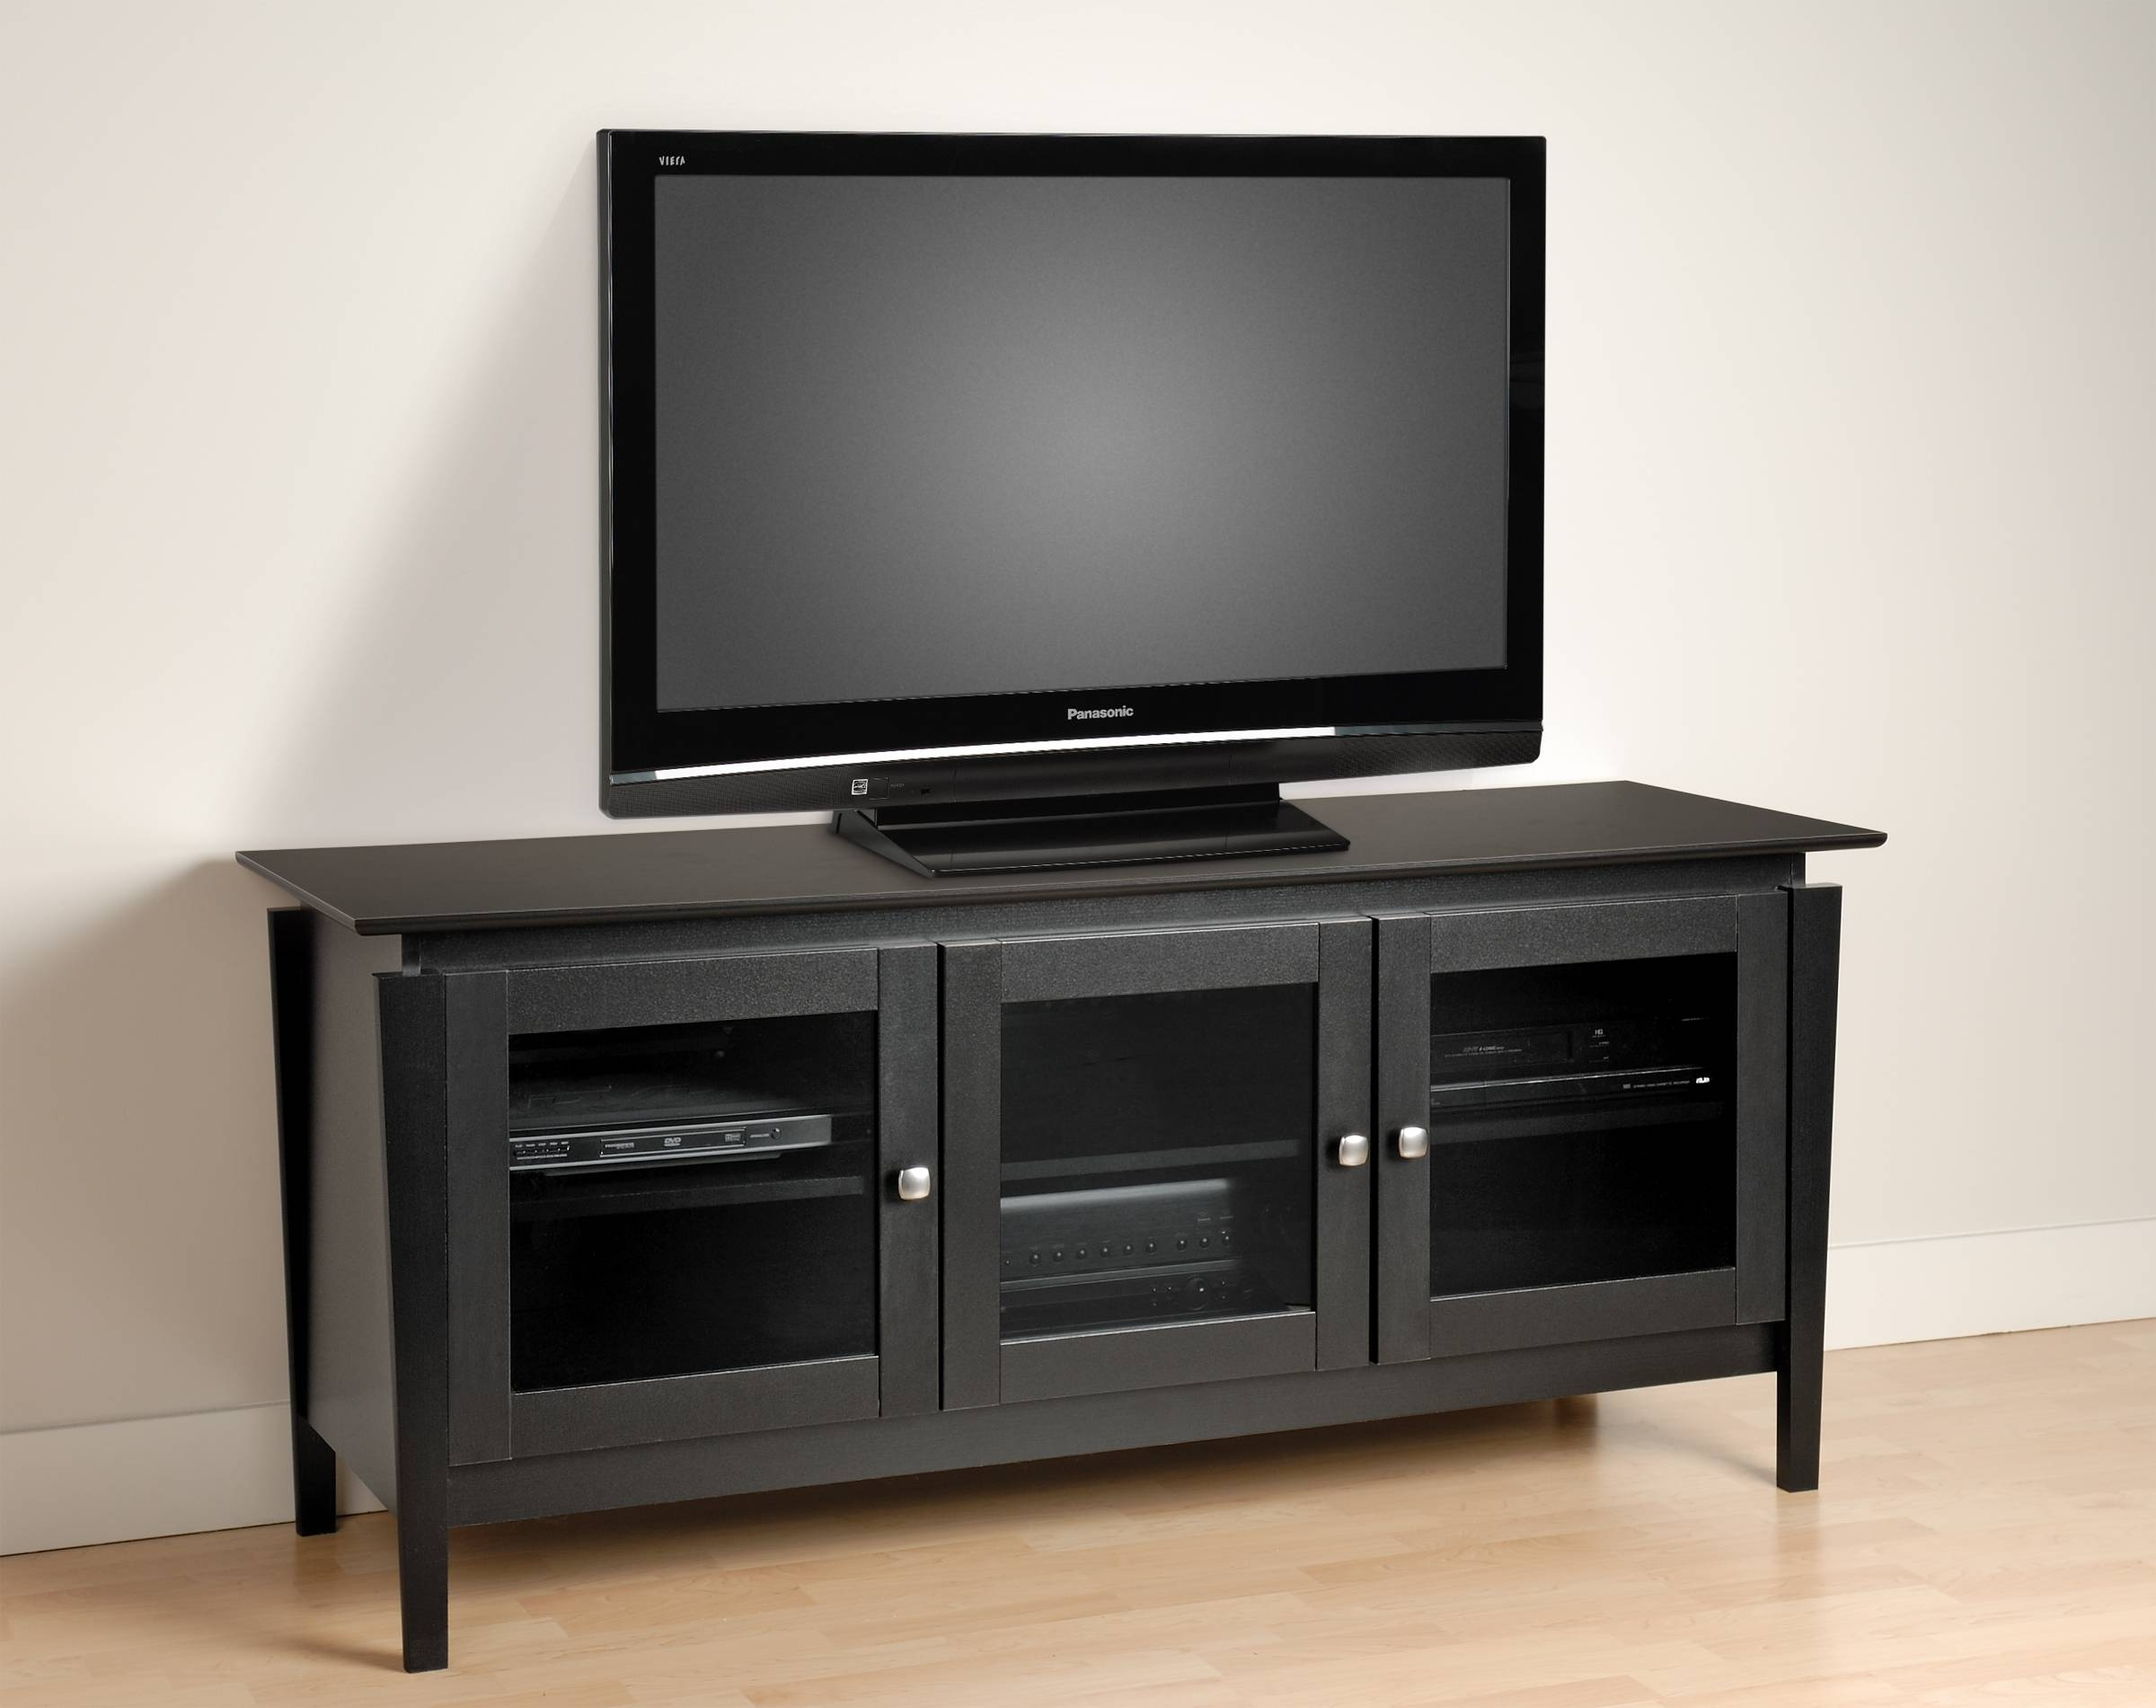 Black Wooden Tv Cabinets With Glass Doors And Steel Knob On Short with Black Corner Tv Cabinets With Glass Doors (Image 2 of 15)